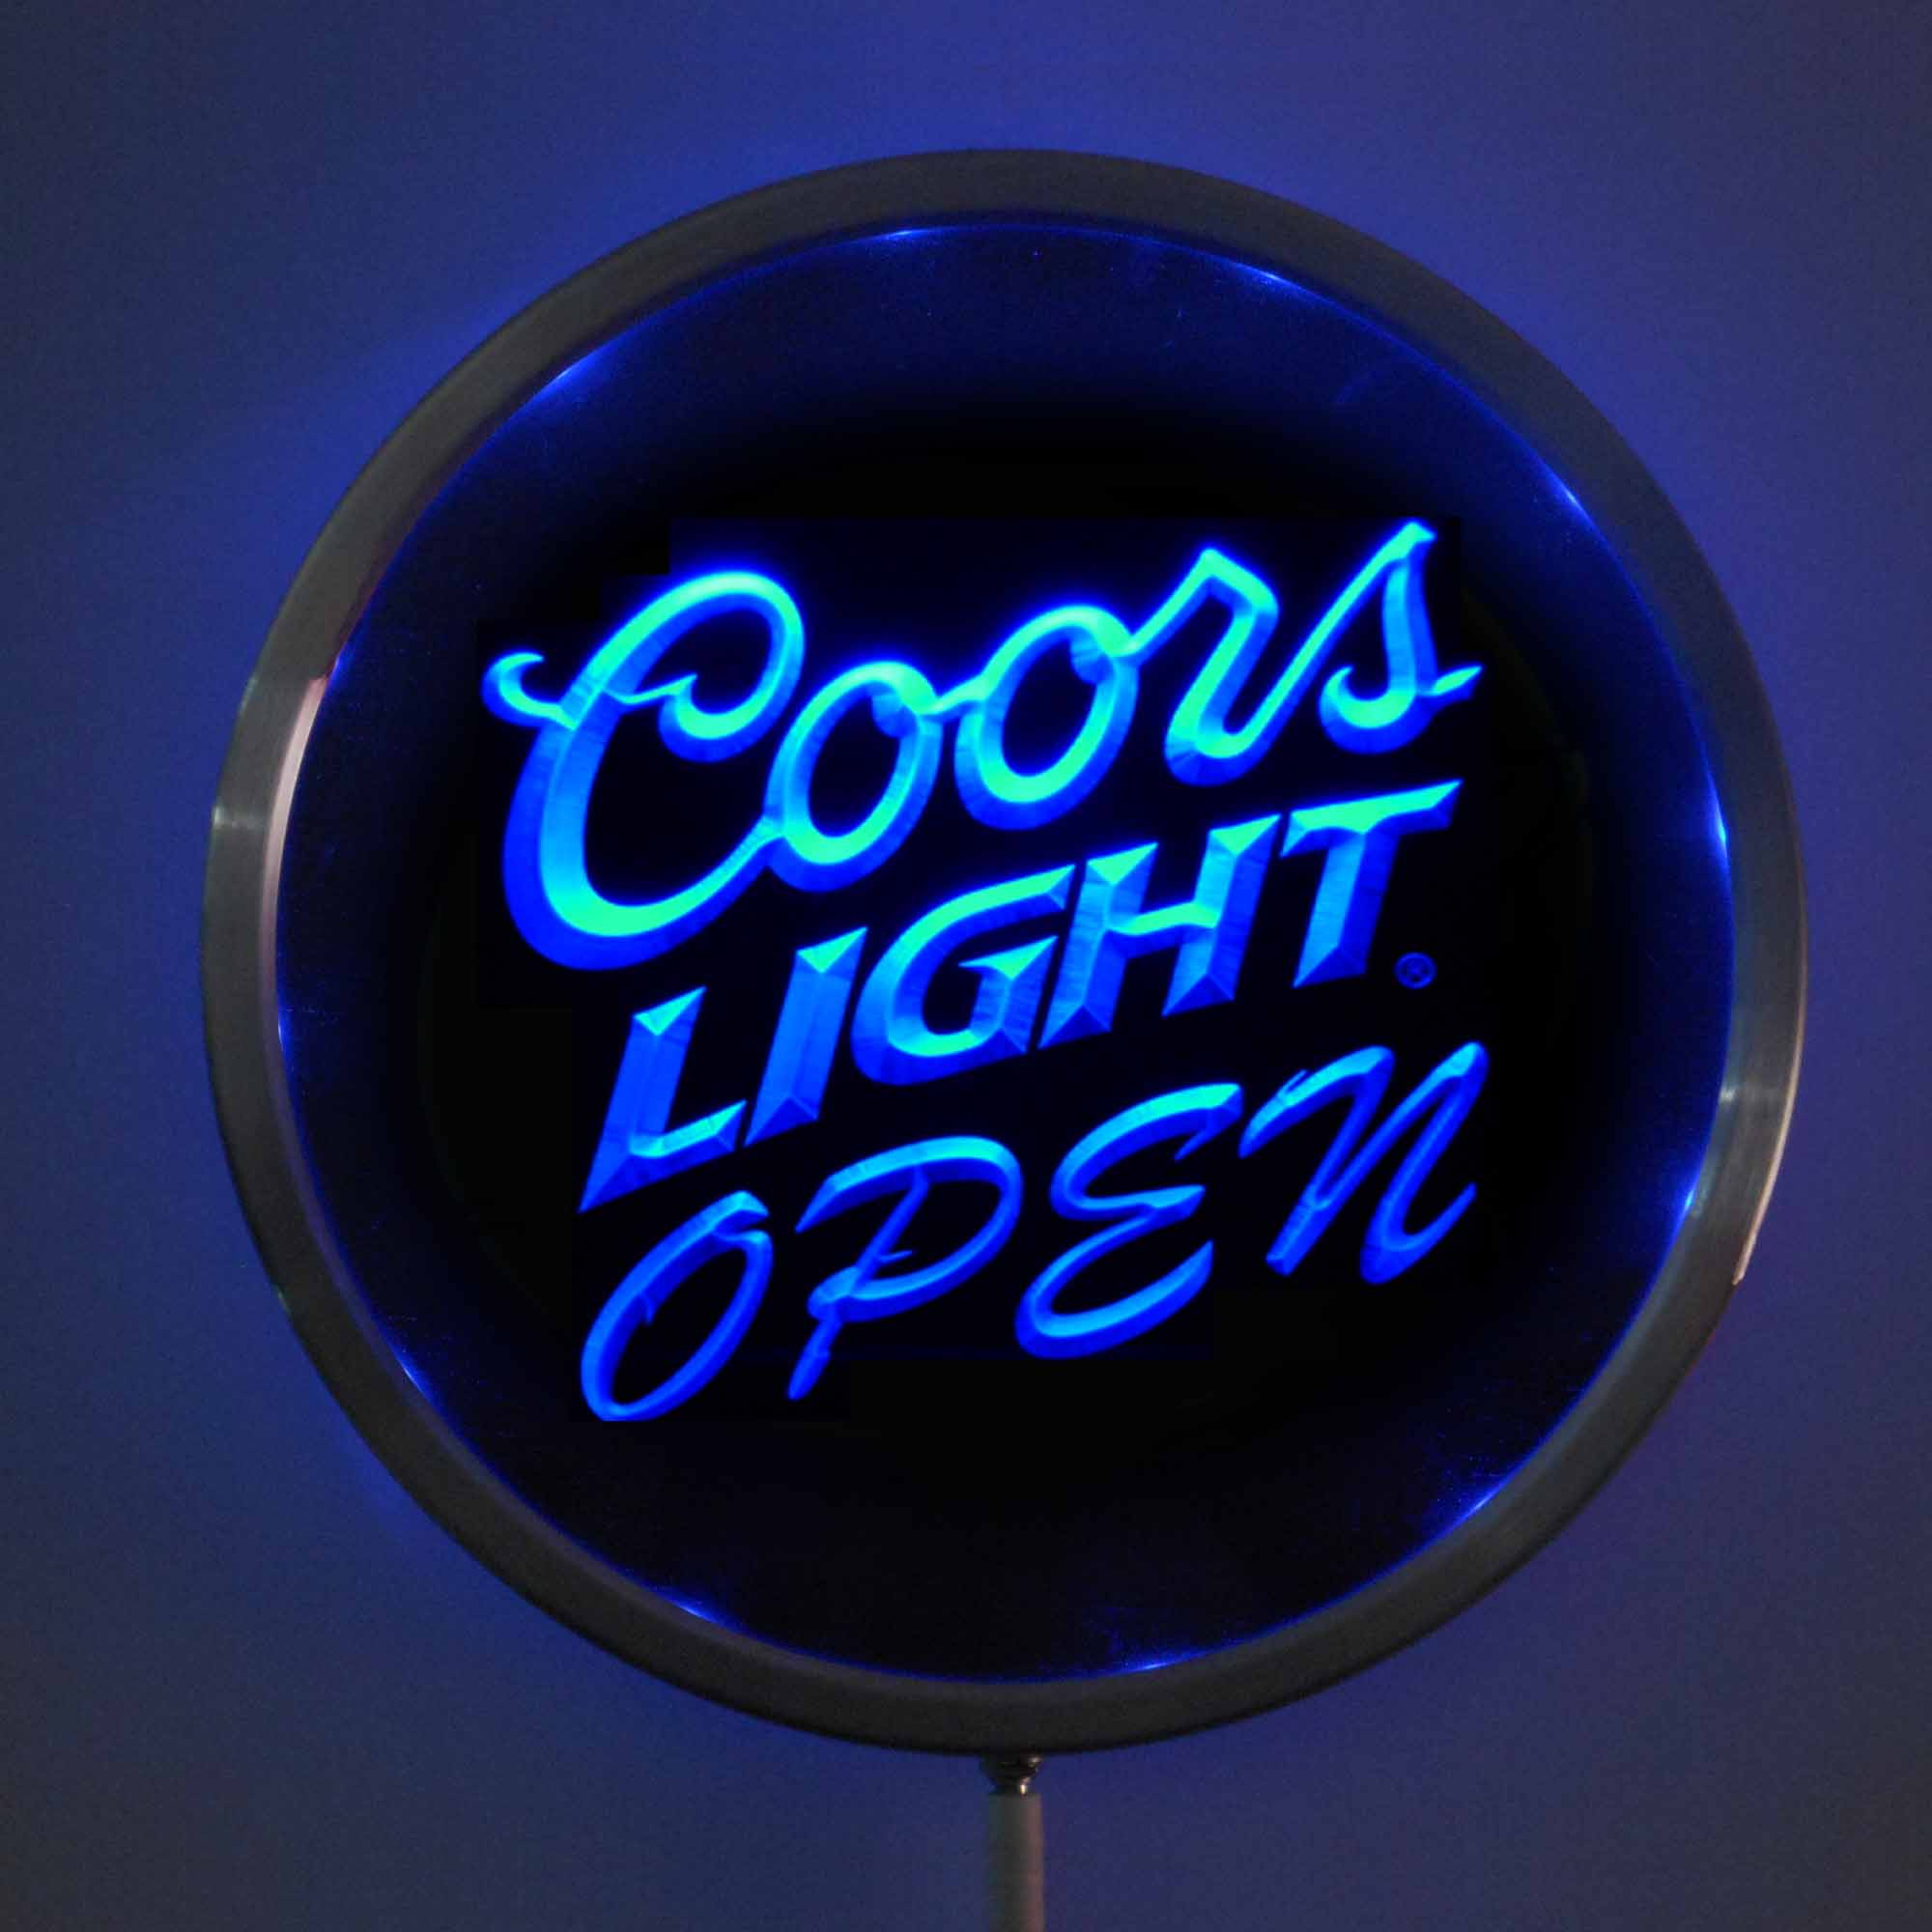 rs 0027 Coors Light OPEN LED Neon Round Signs 25cm/ 10